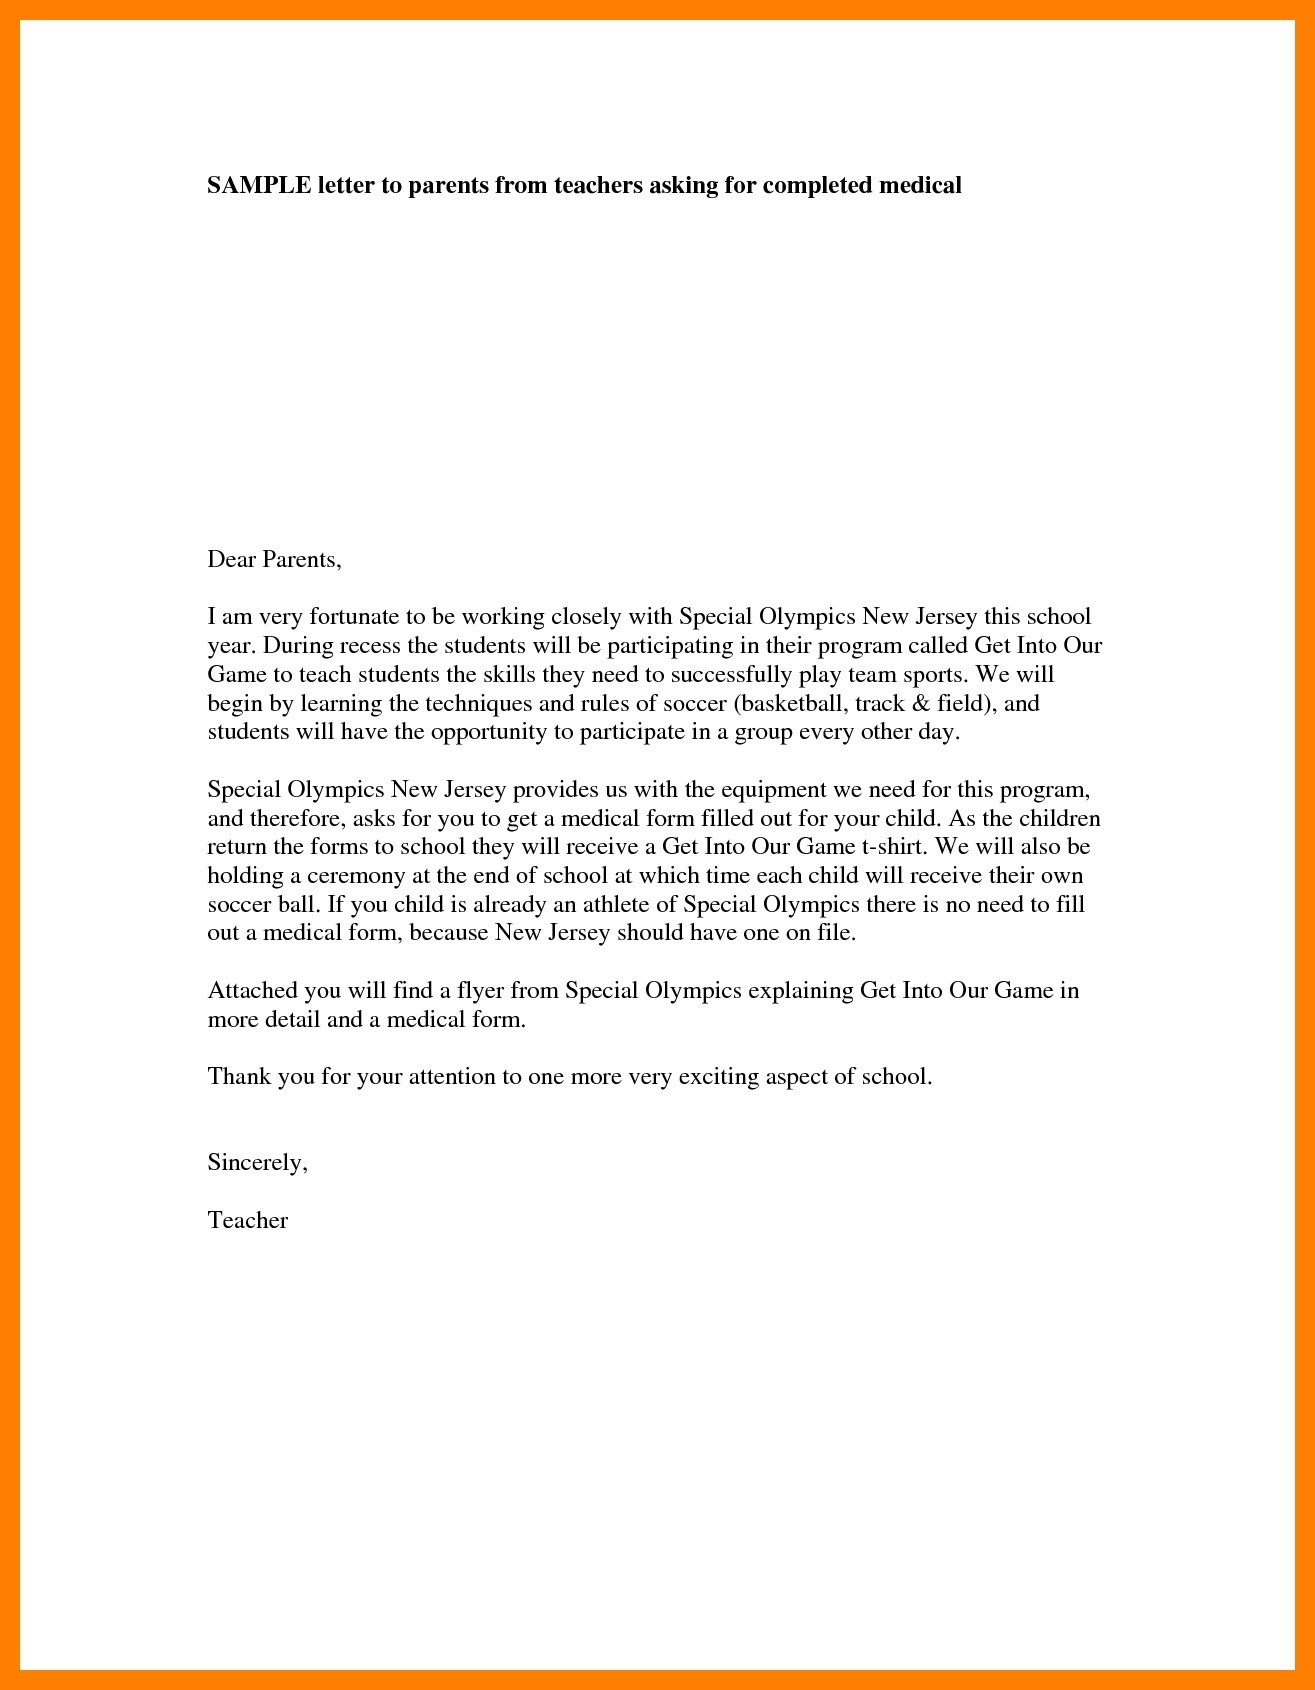 Preschool Welcome Letter to Parents From Teacher Template - Wel E Parent Letters From Teachers Copy Email Email to Parents